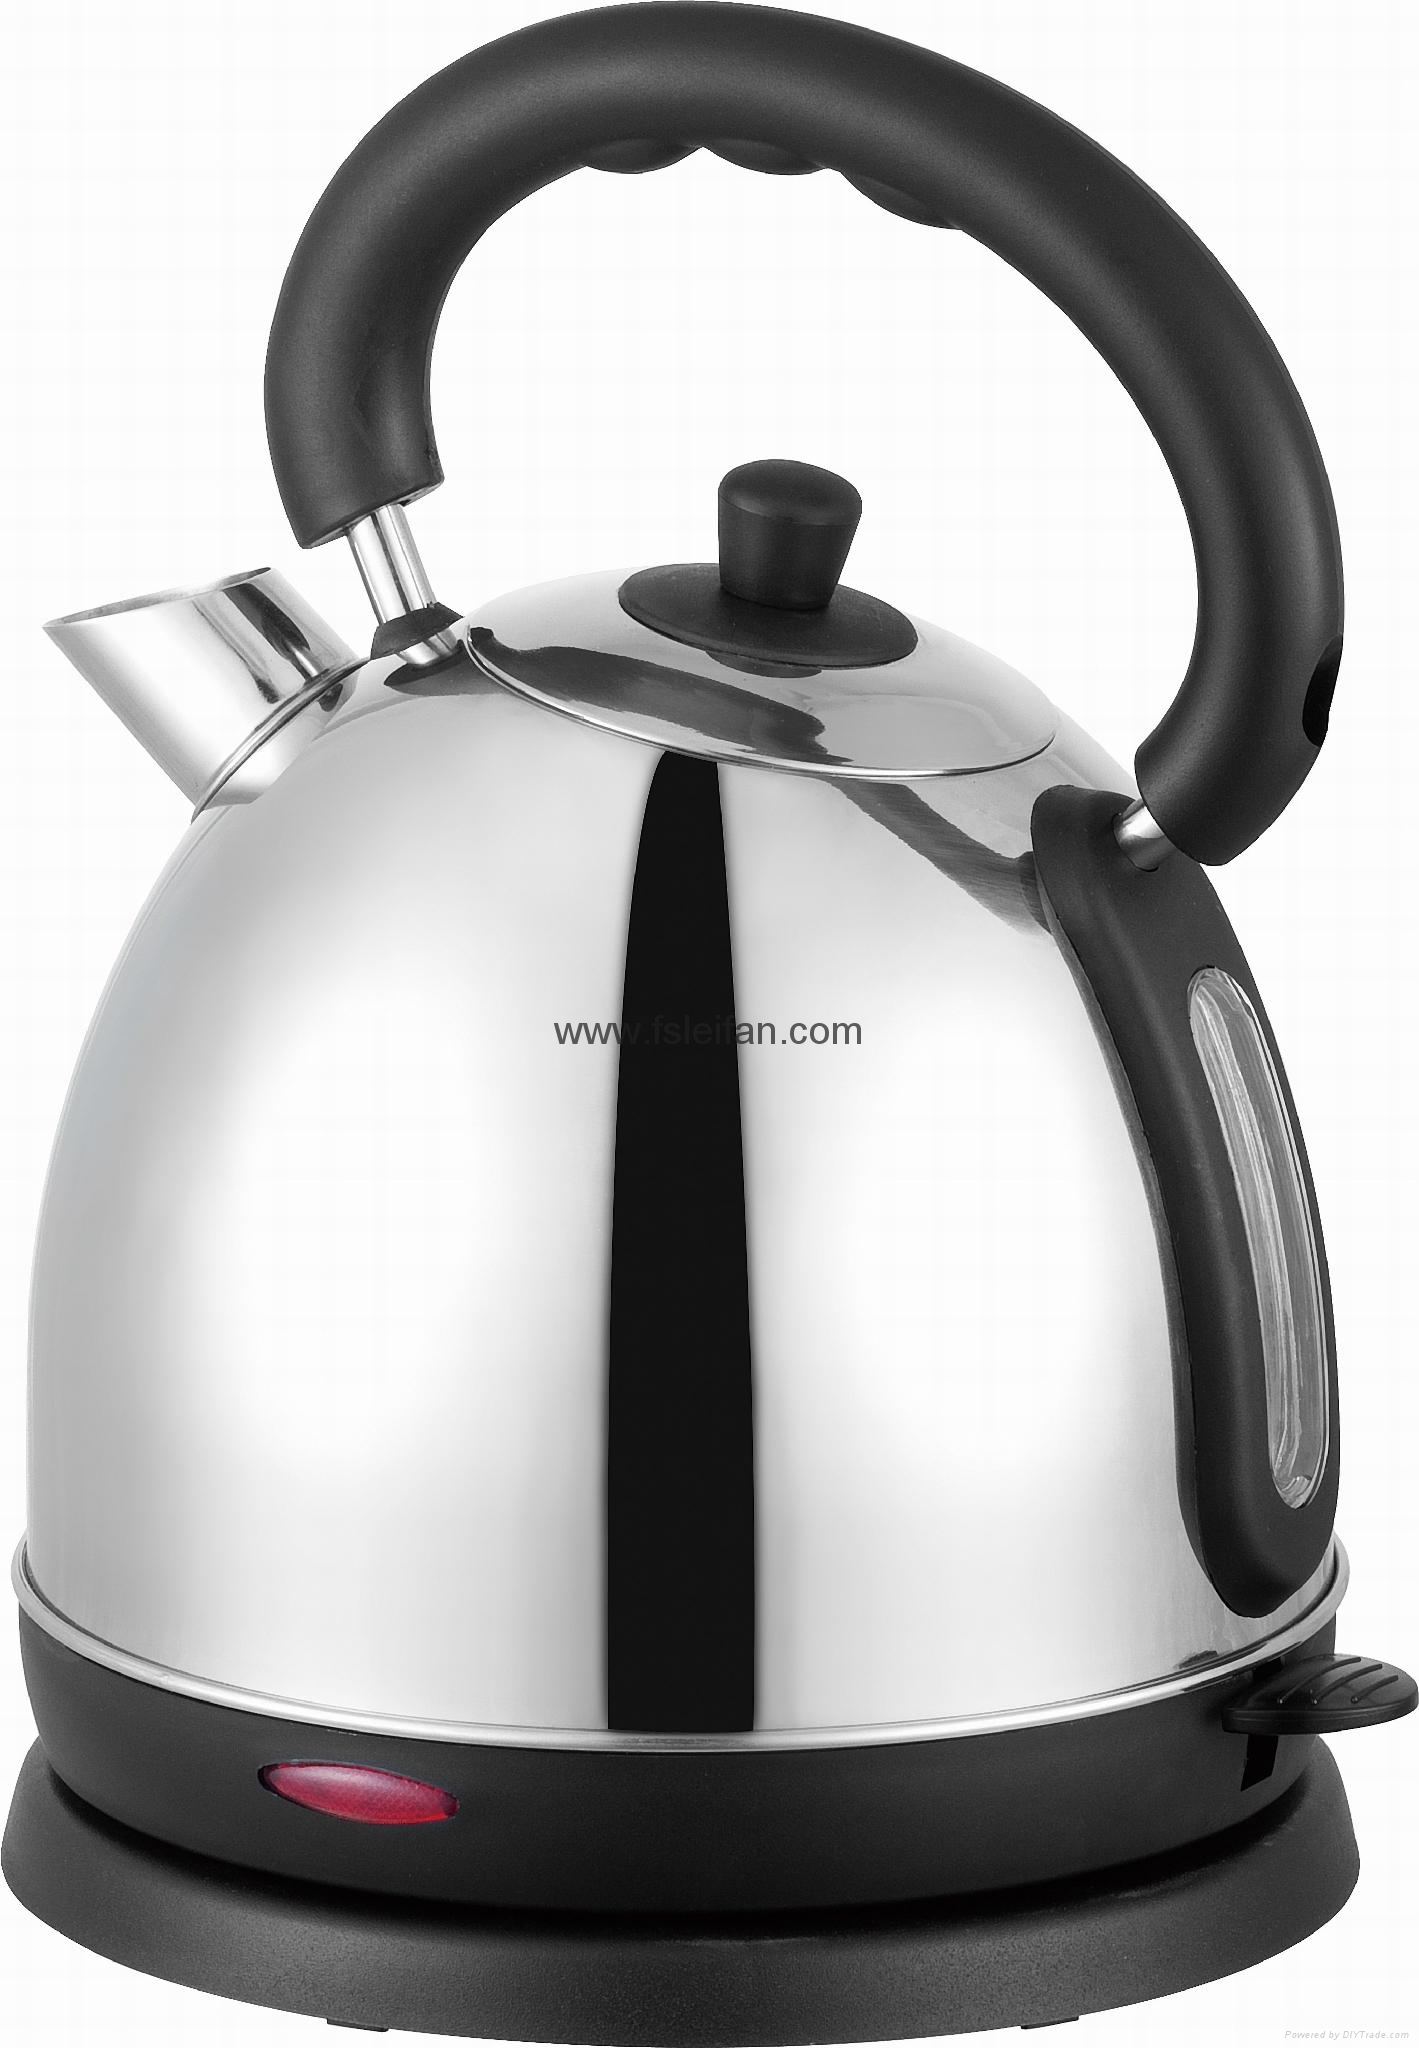 Stainless steel electric kettle 1.7L capacity 1